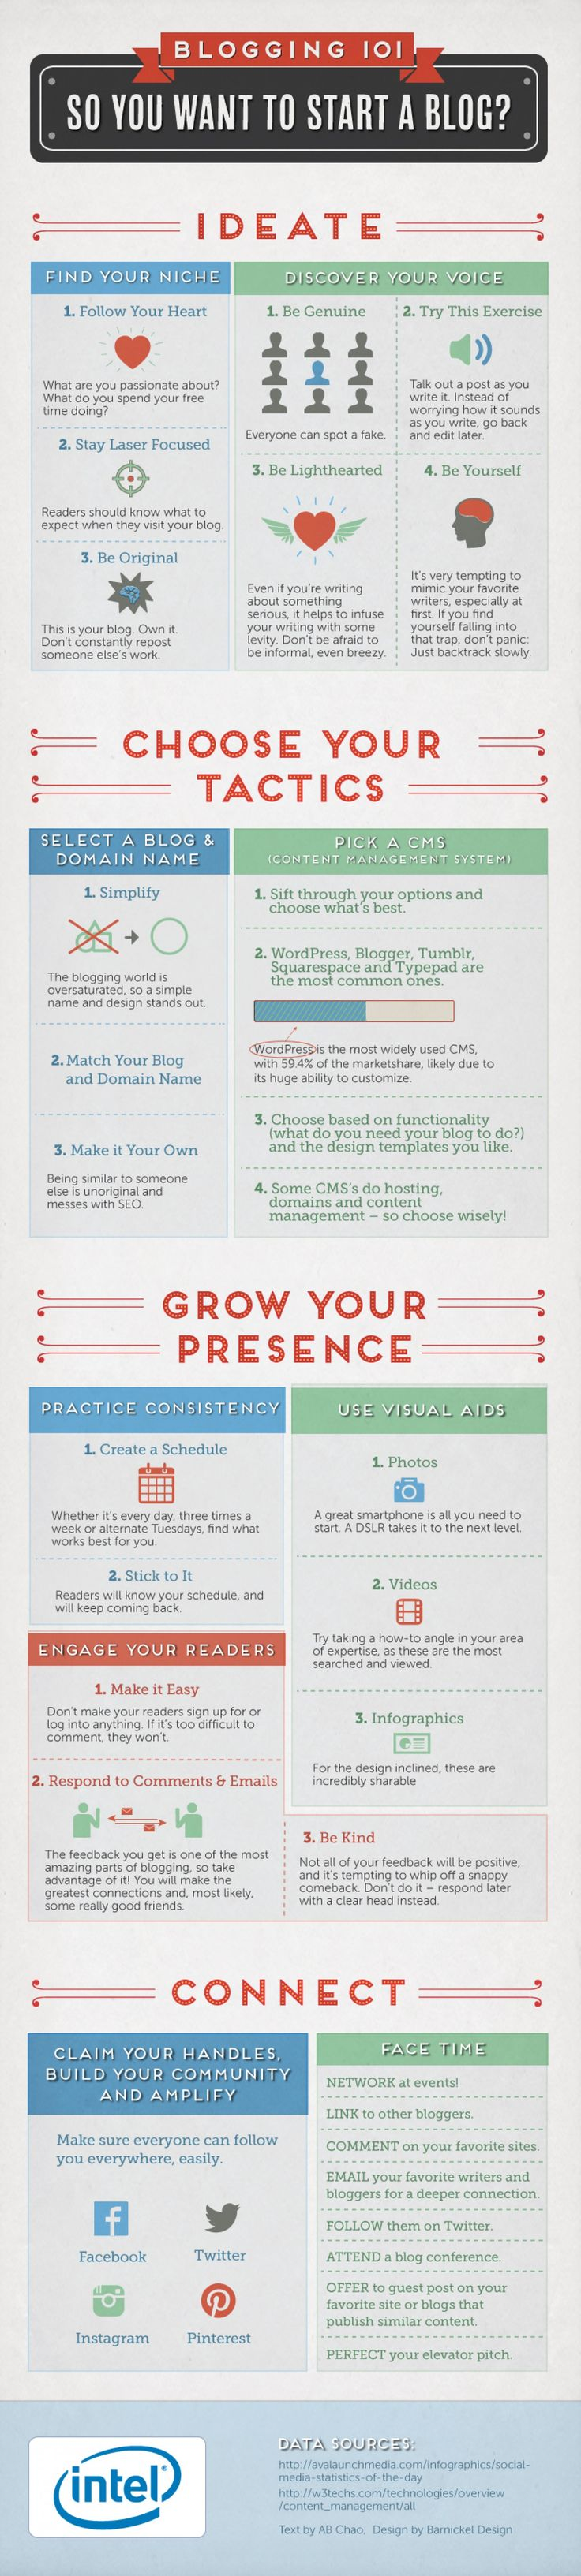 Blogging 101: Starting a Blog and Getting Noticed [INFOGRAPHIC] created by Visual.ly  h/t @rebekahradice